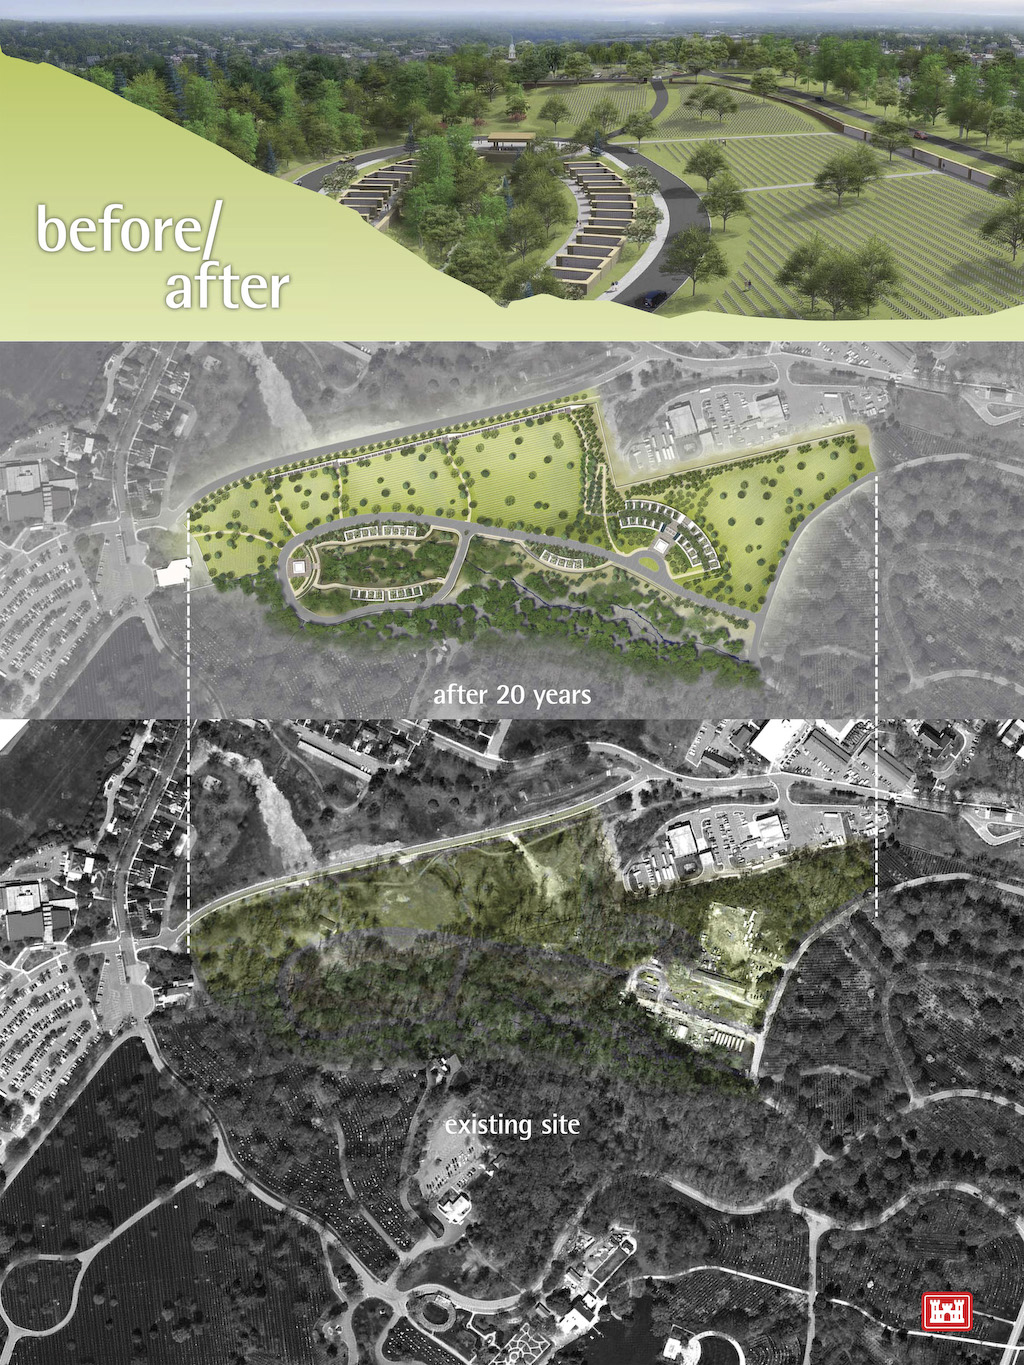 A graphic showing the environment assessment for the Arlington National Cemetery Millennium Project